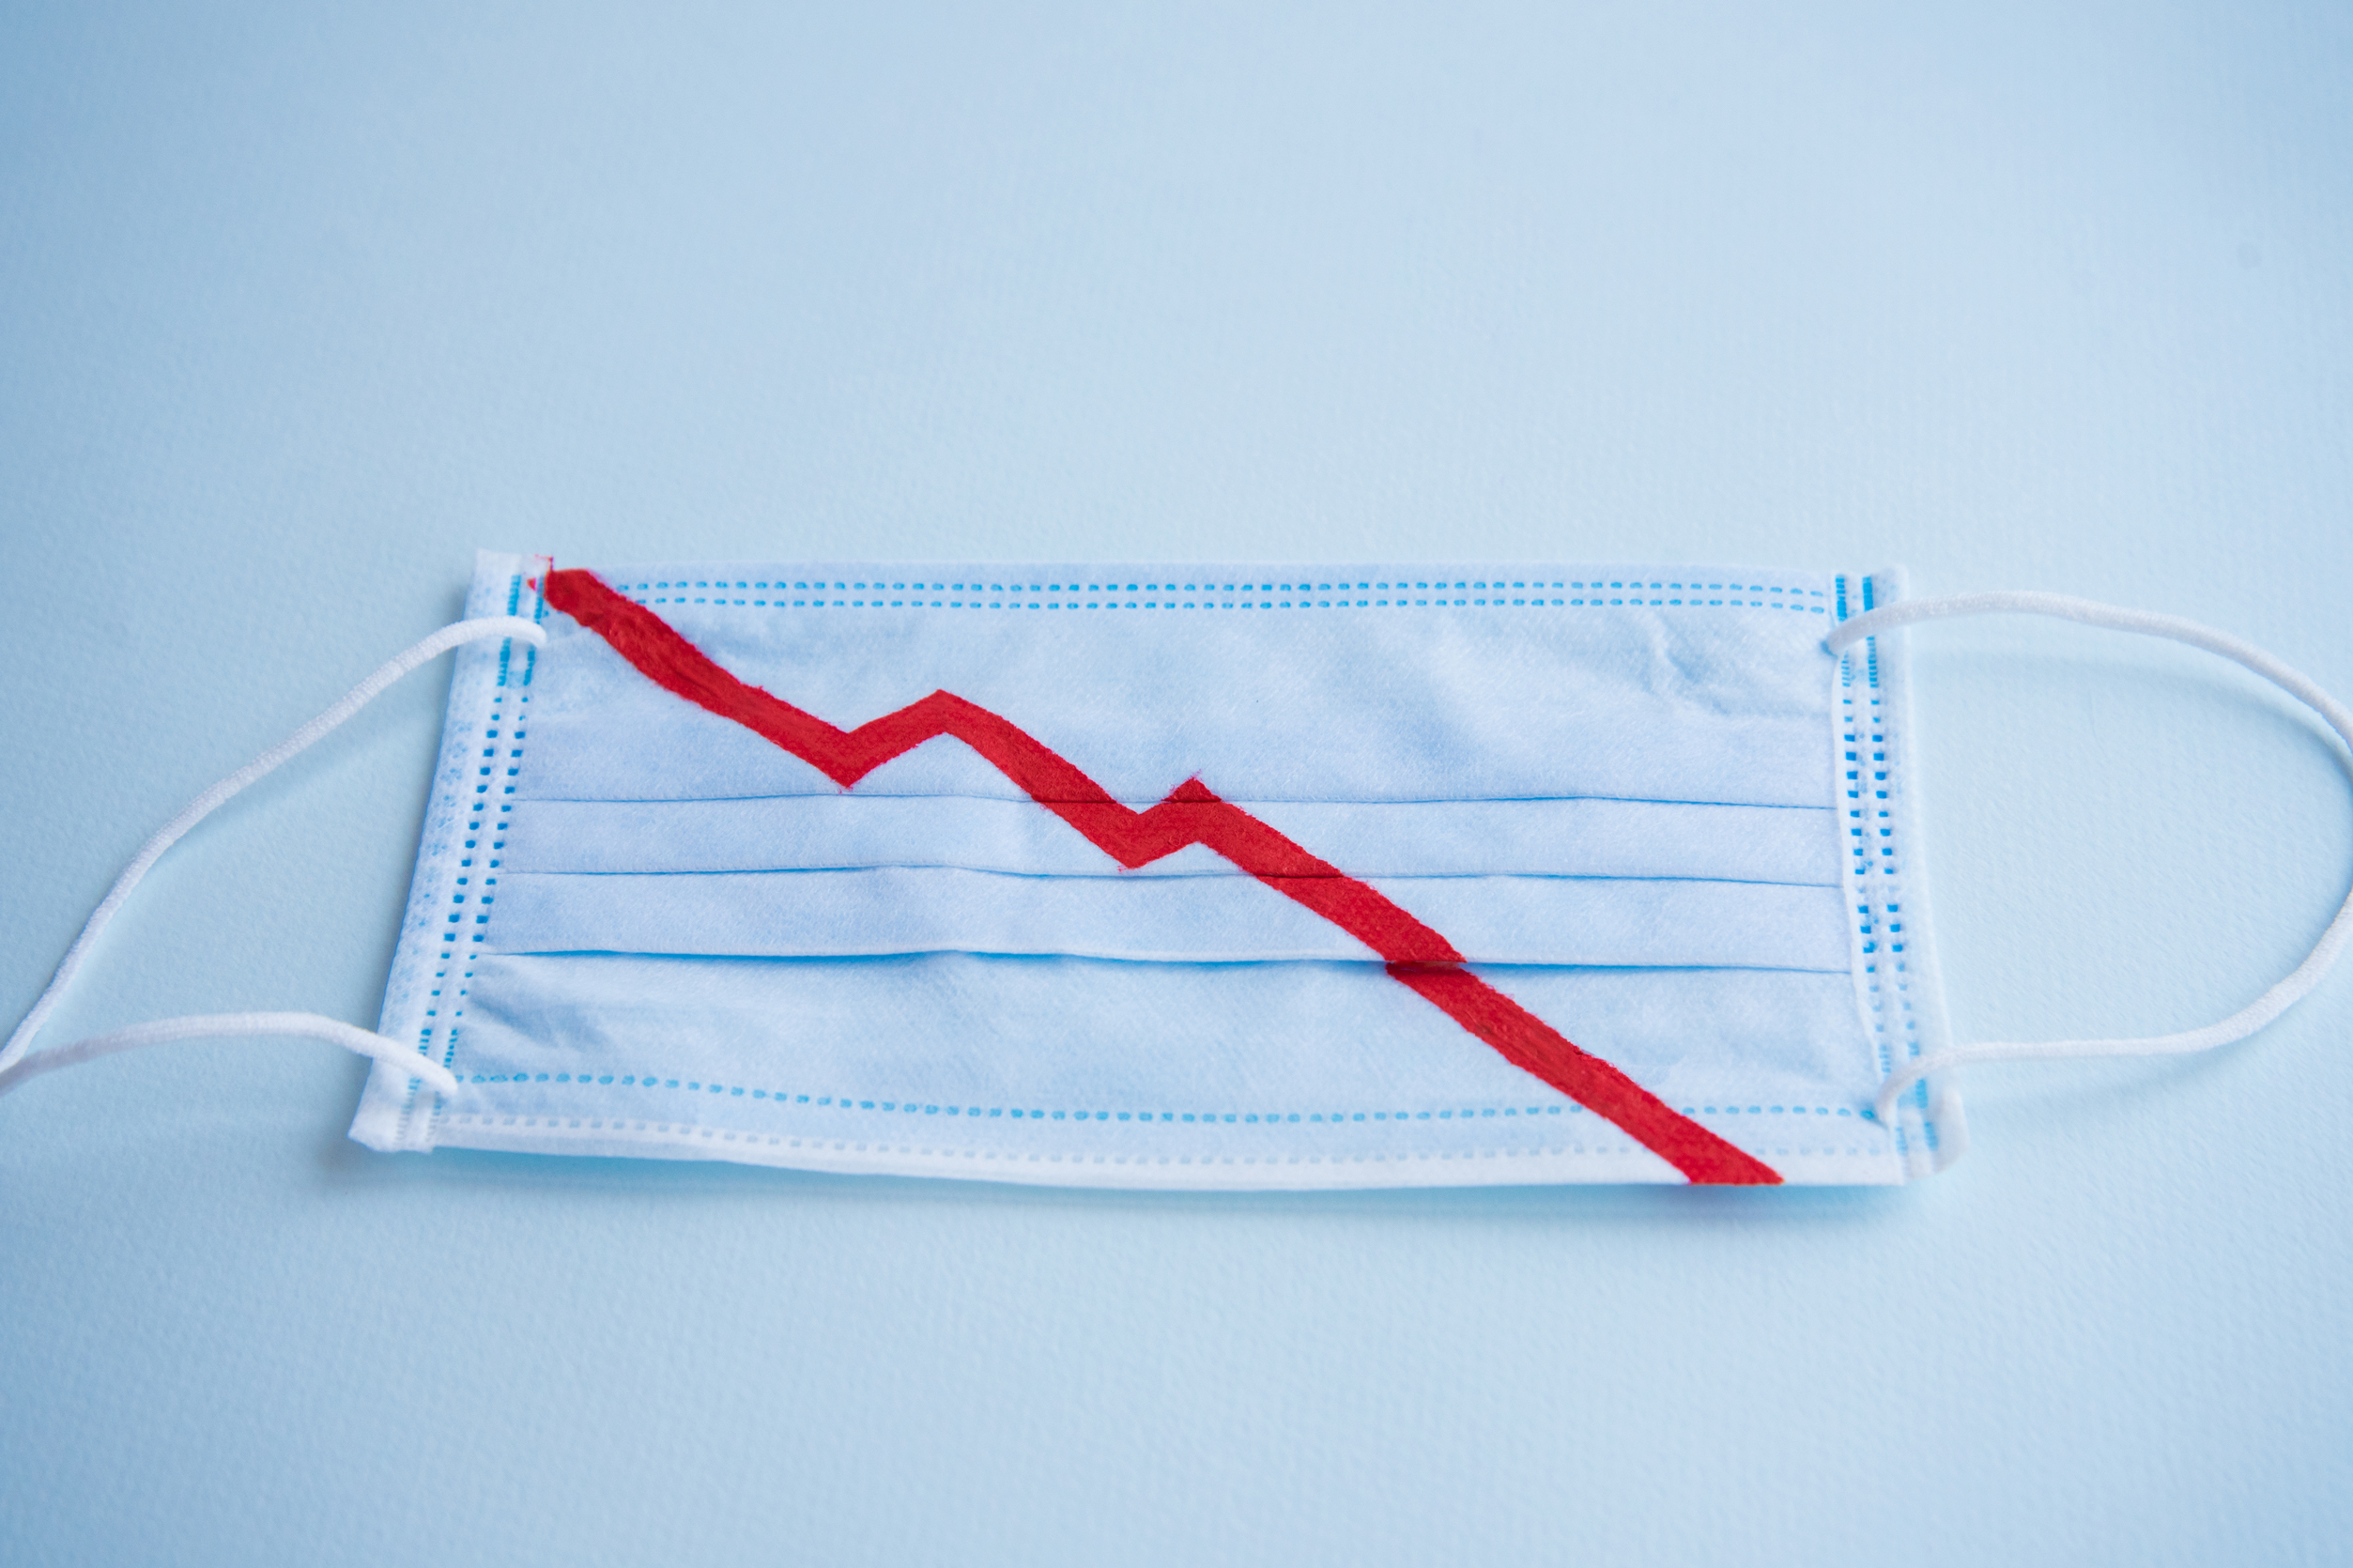 Advertisers say COVID-19 will hit harder than 2008 financial crisis: IAB report